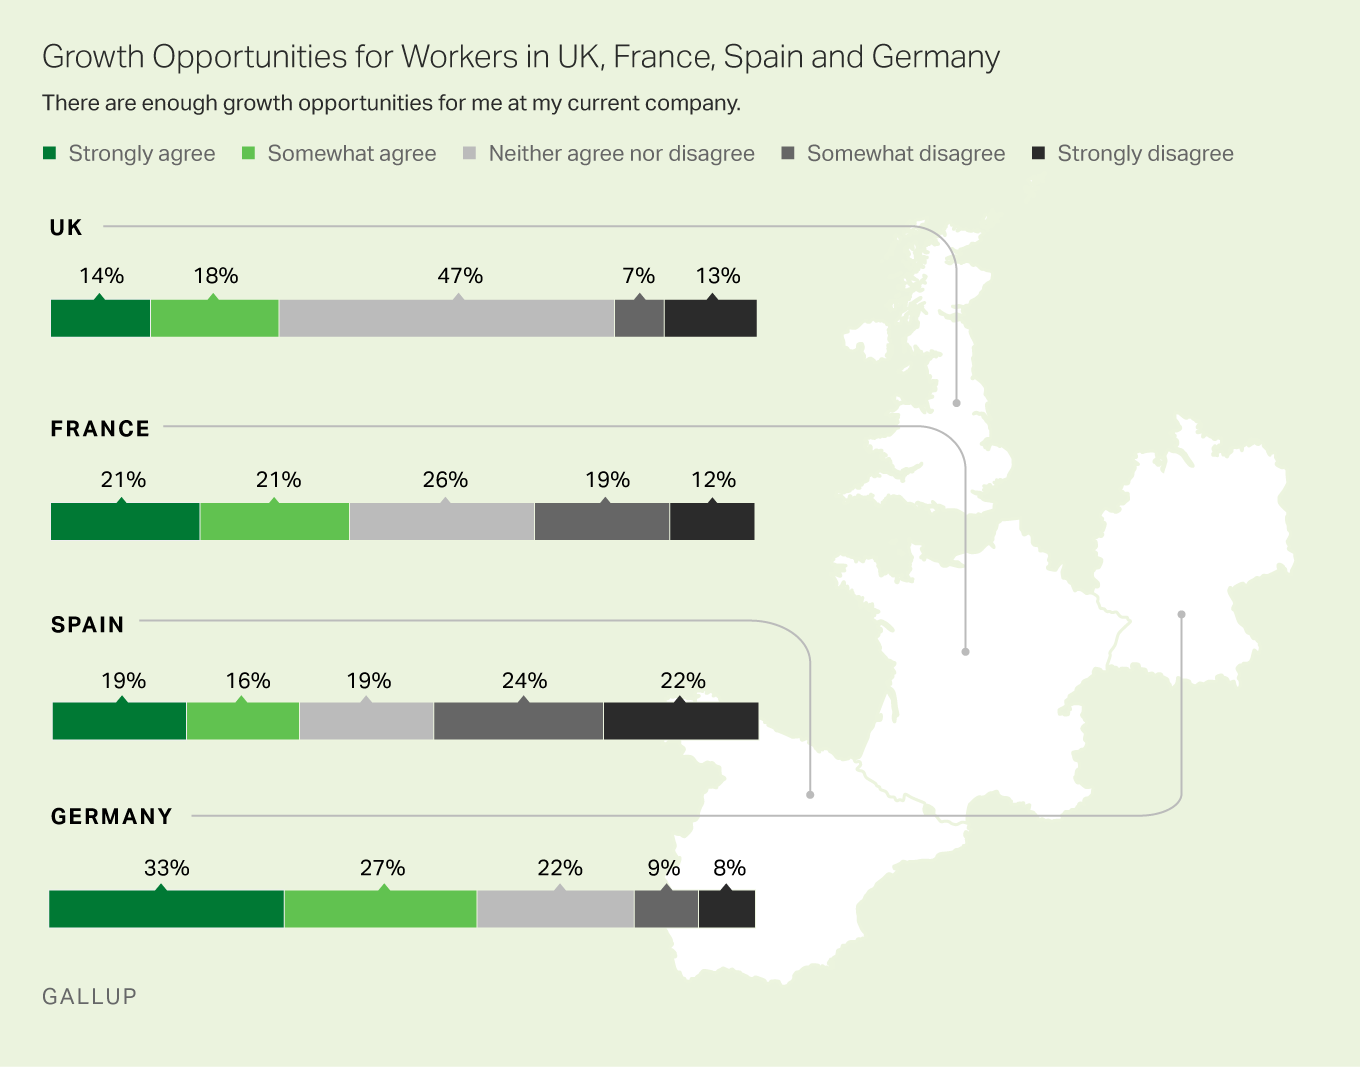 Growth opportunities for workers in UK, France, Spain and Germany.